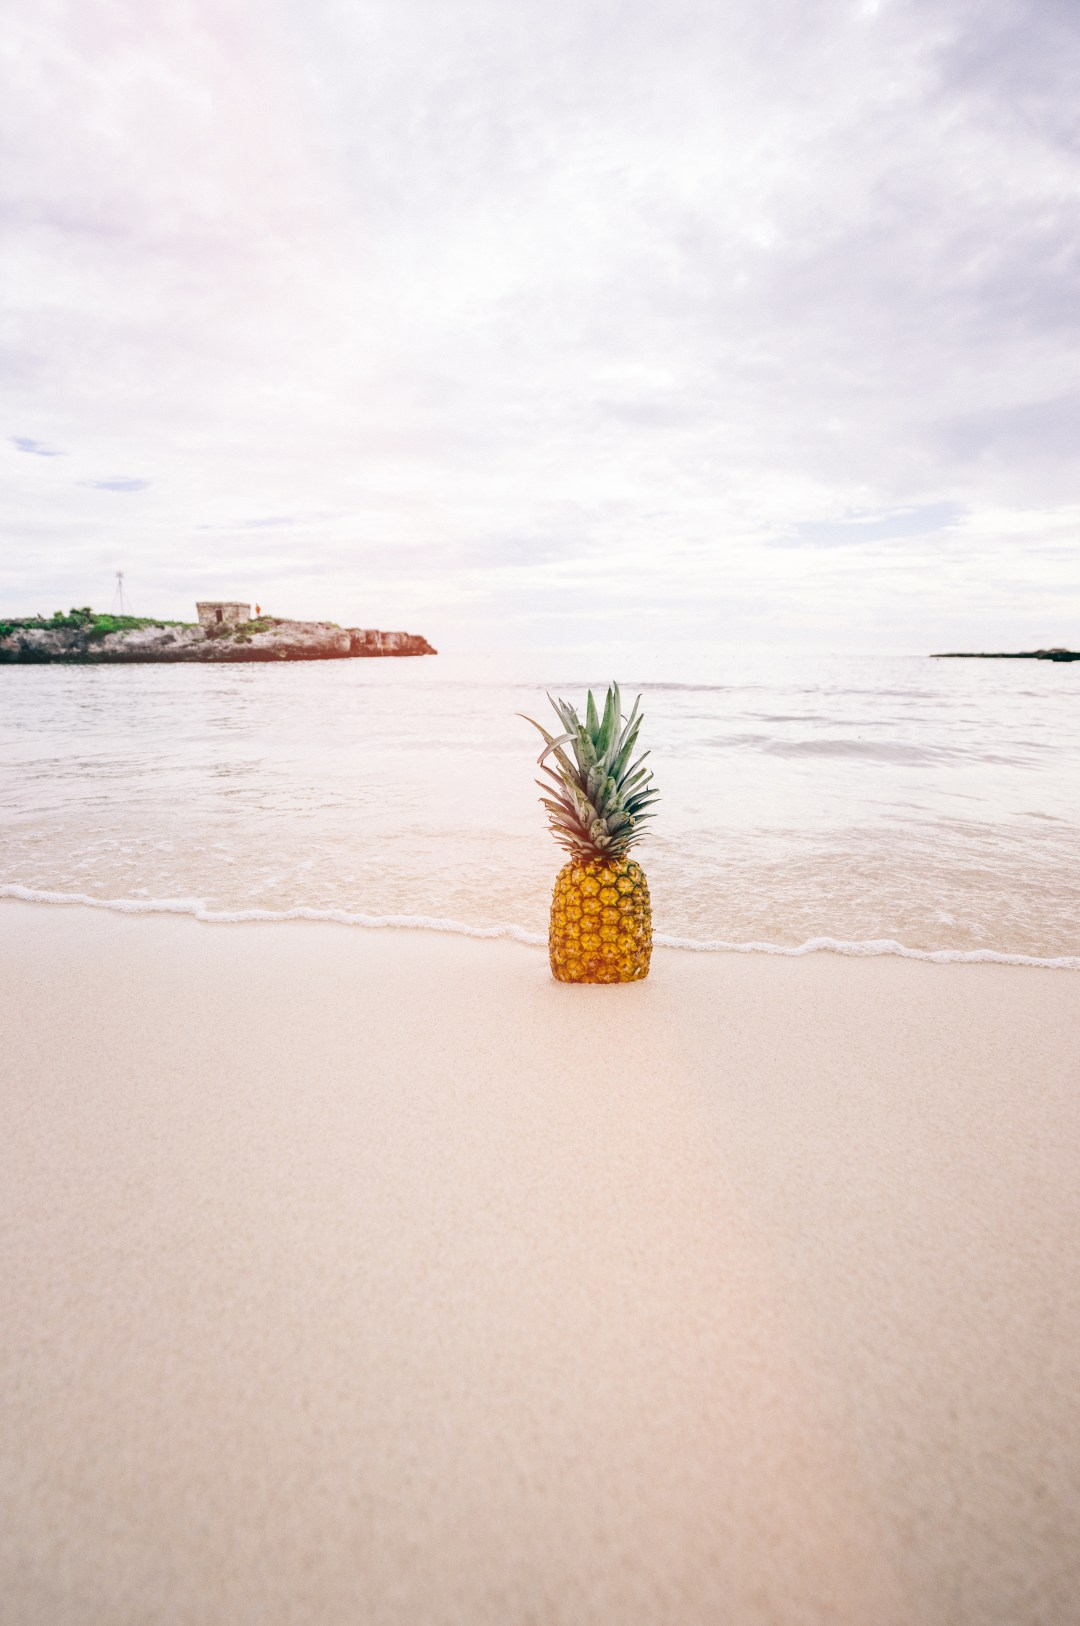 Quote Wallpaper Mac Pineapple In The Sand Photo By Pineapple Supply Co